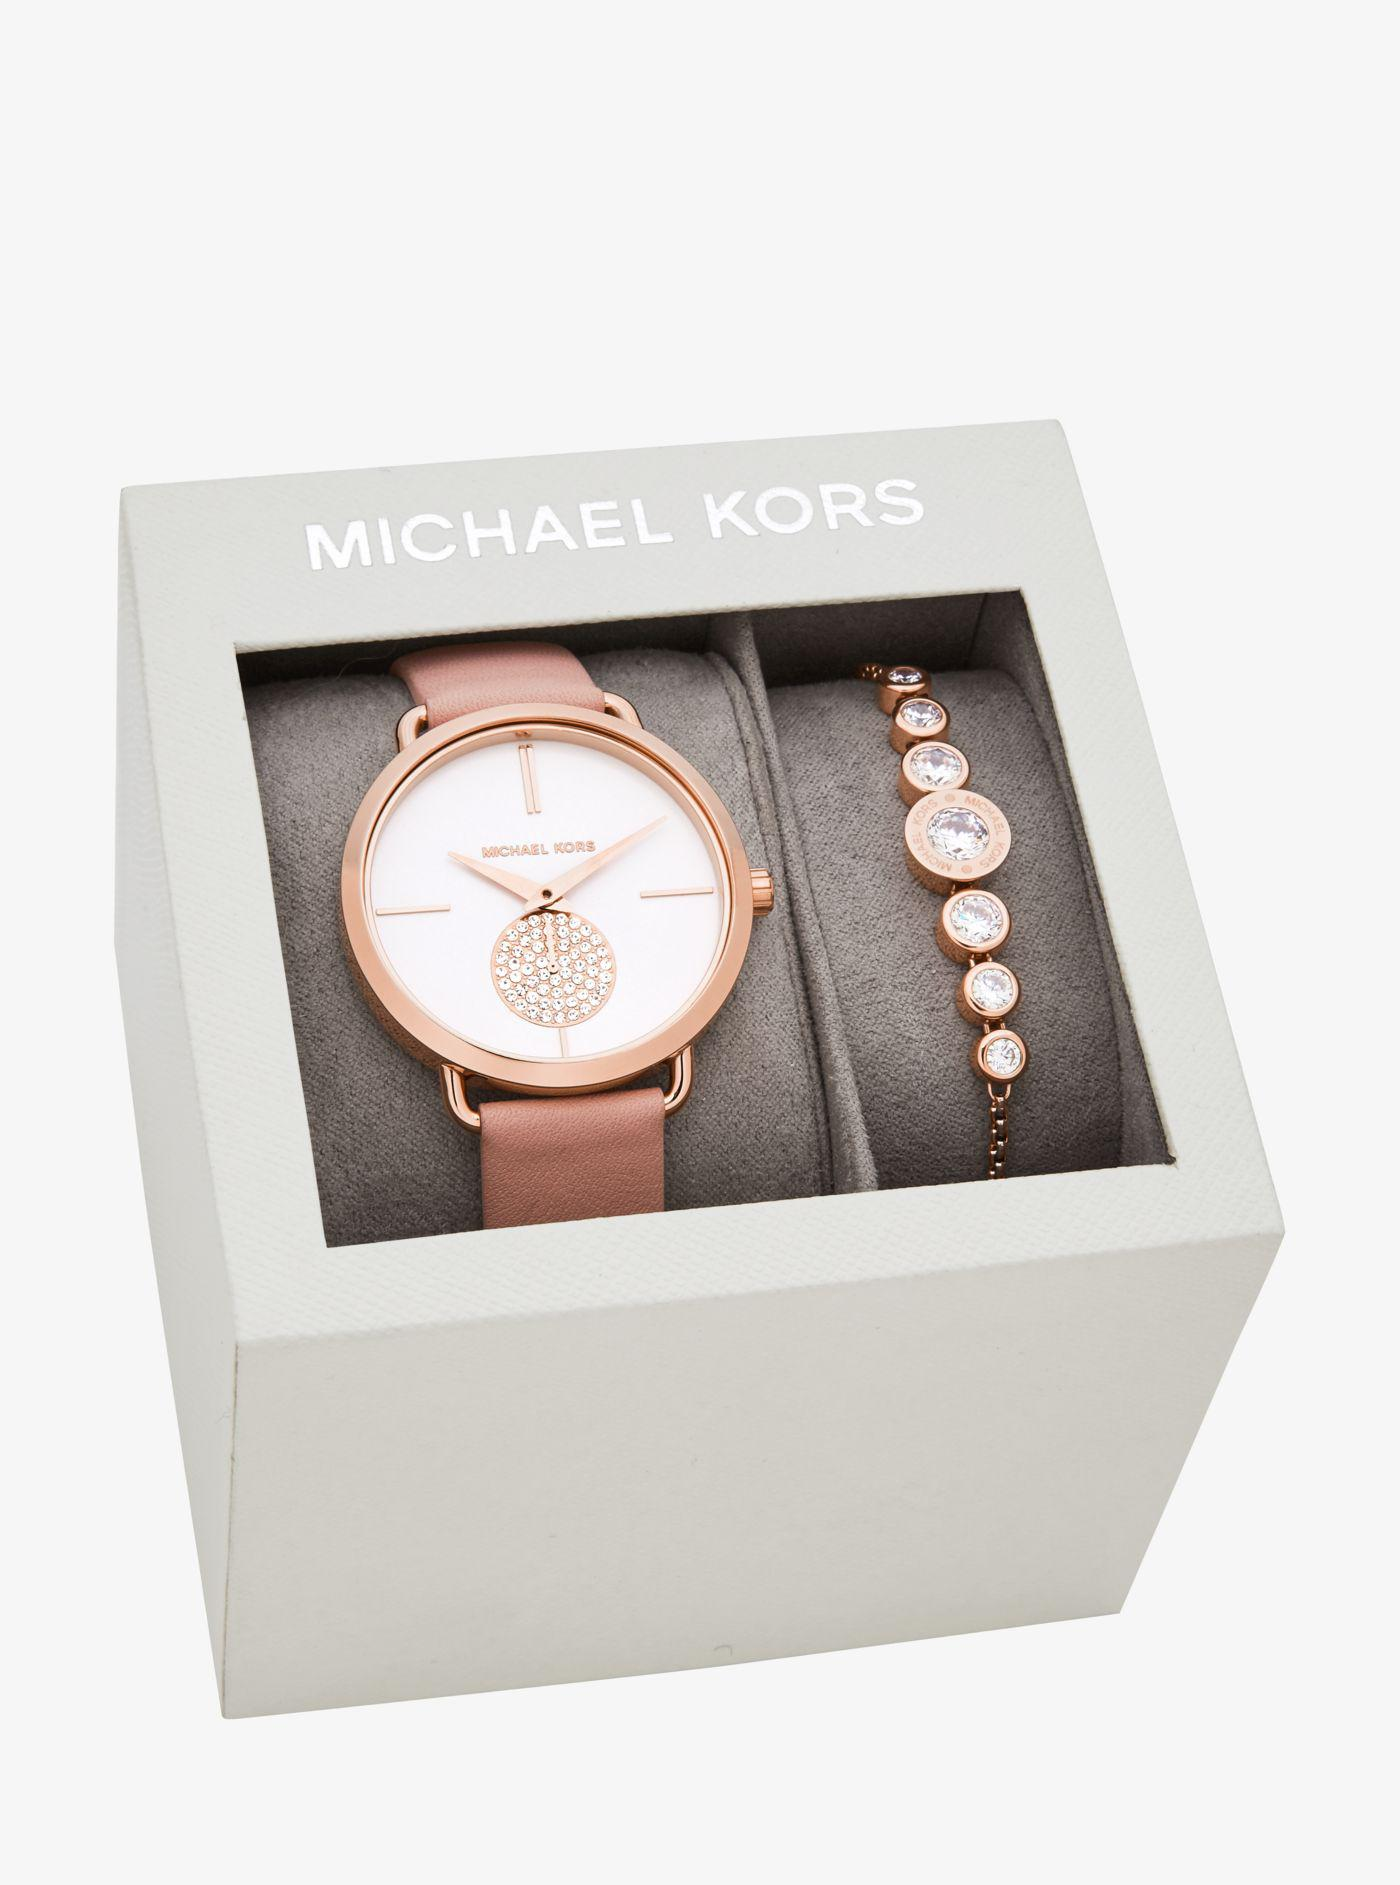 Michael Kors Portia Rose Gold Tone Watch And Bracelet Set In